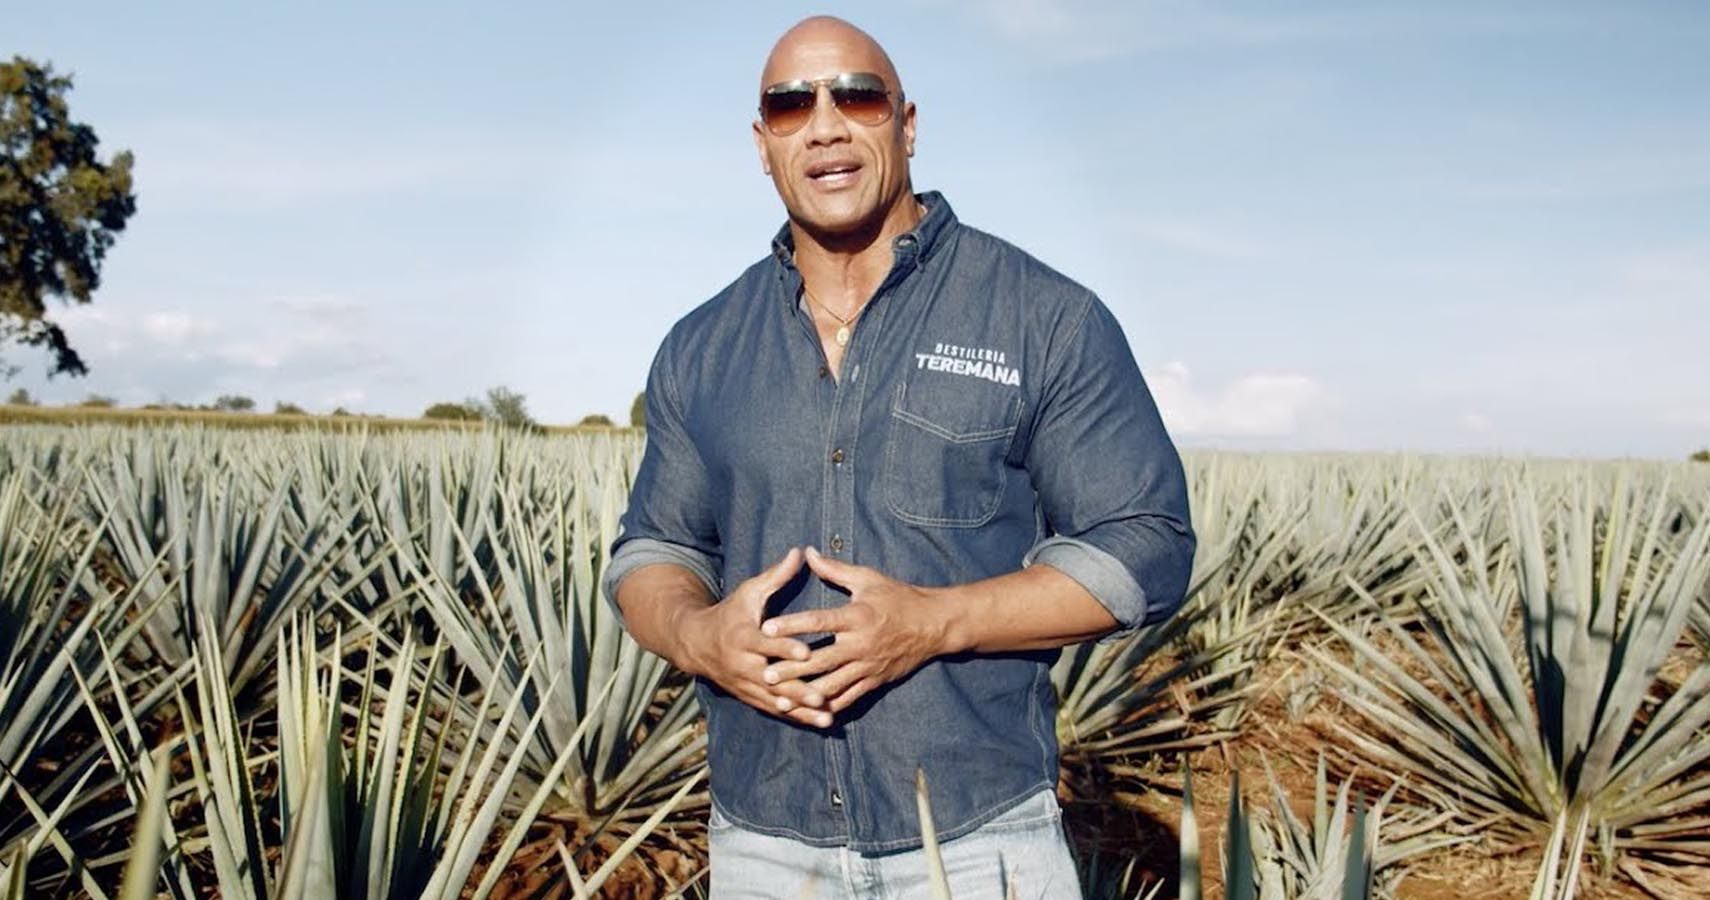 The Rock Boasts Huge Success With Potentially Most Profitable Venture Yet photo